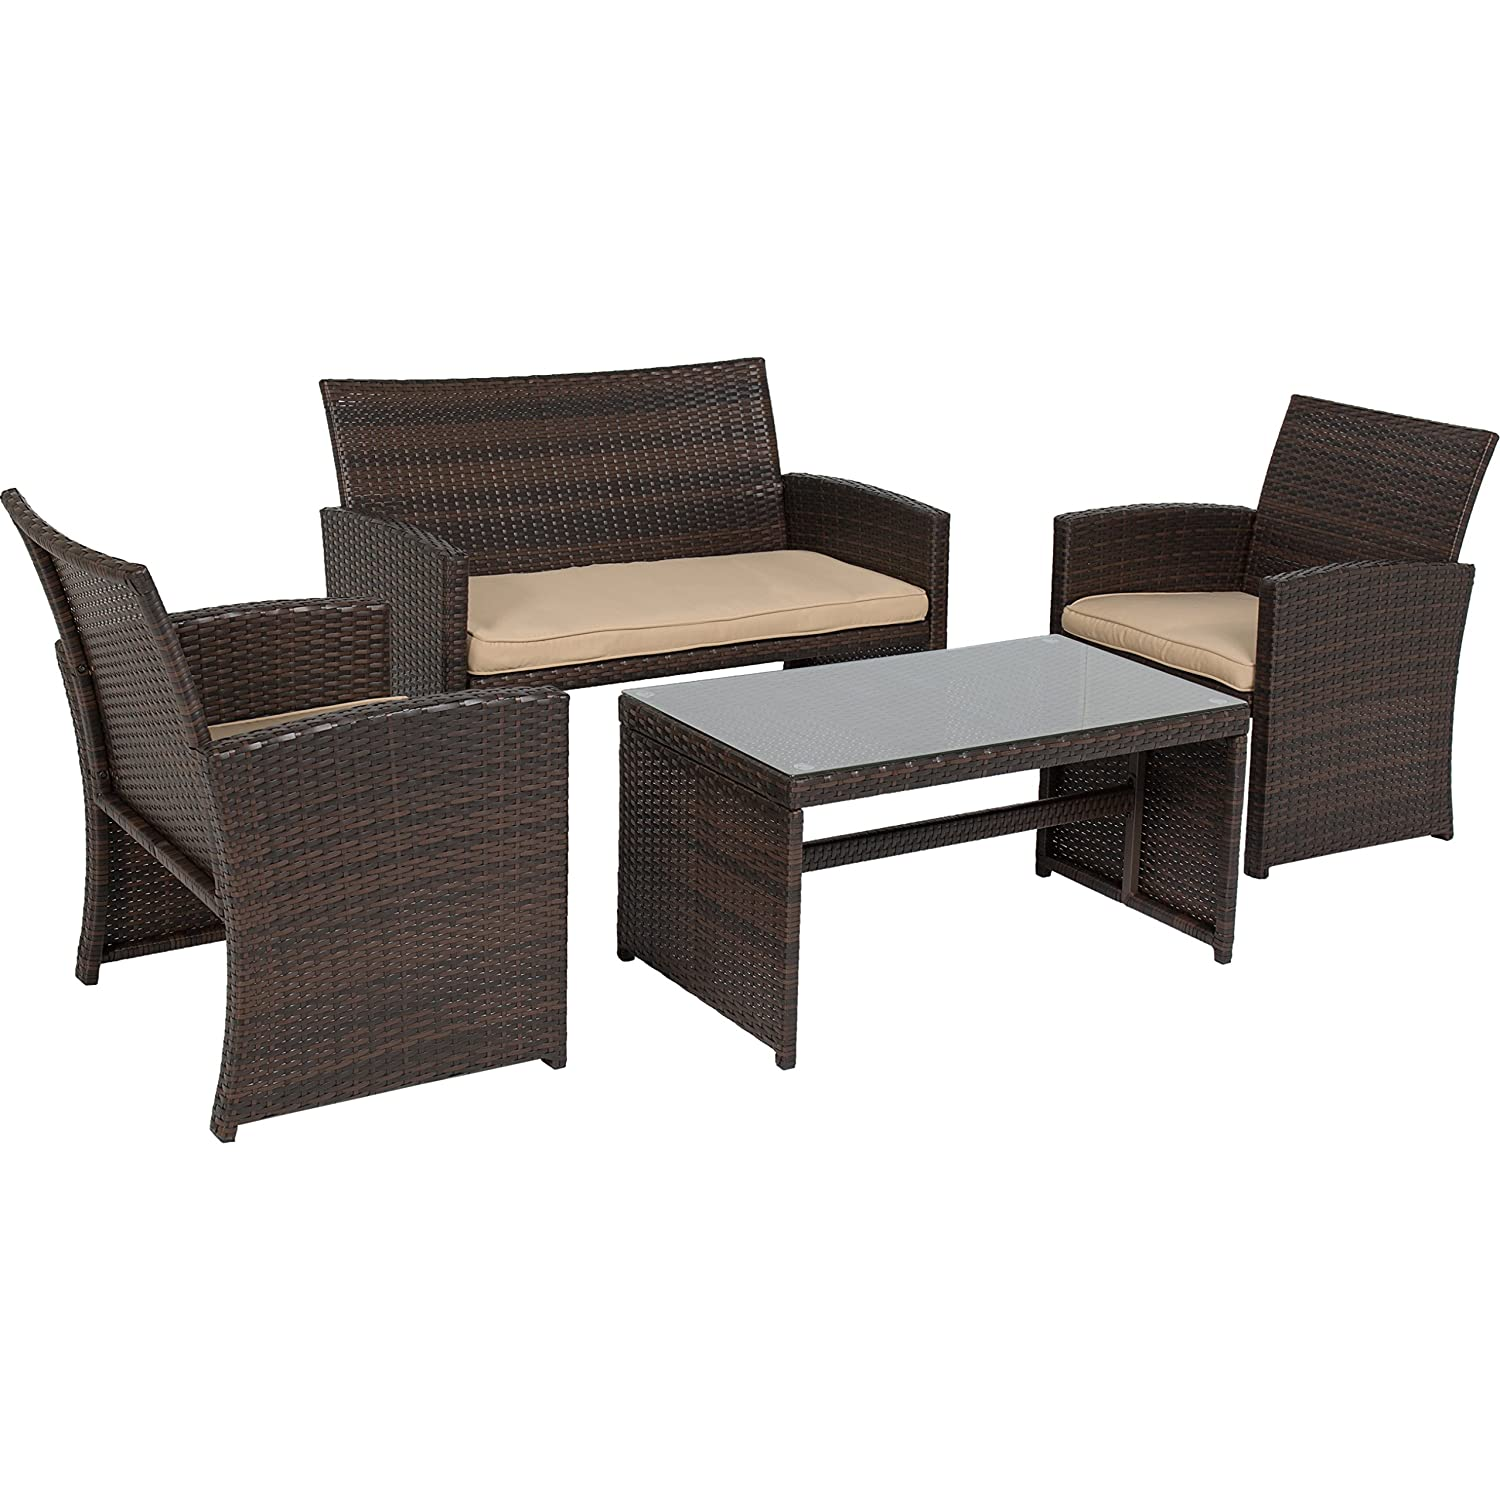 Amazon.com : Best Choice Products 4pc Wicker Outdoor Patio Furniture Set  Custioned Seats : Garden U0026 Outdoor